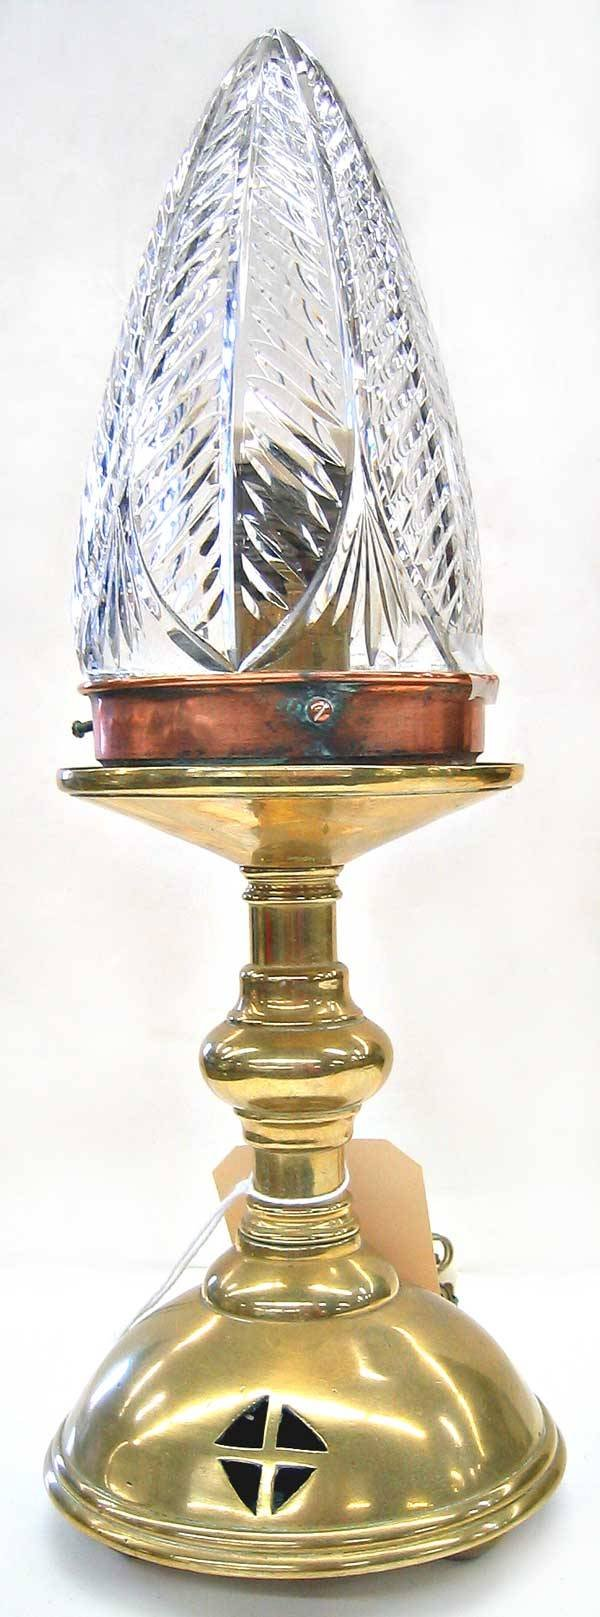 3972: Brass table lamp